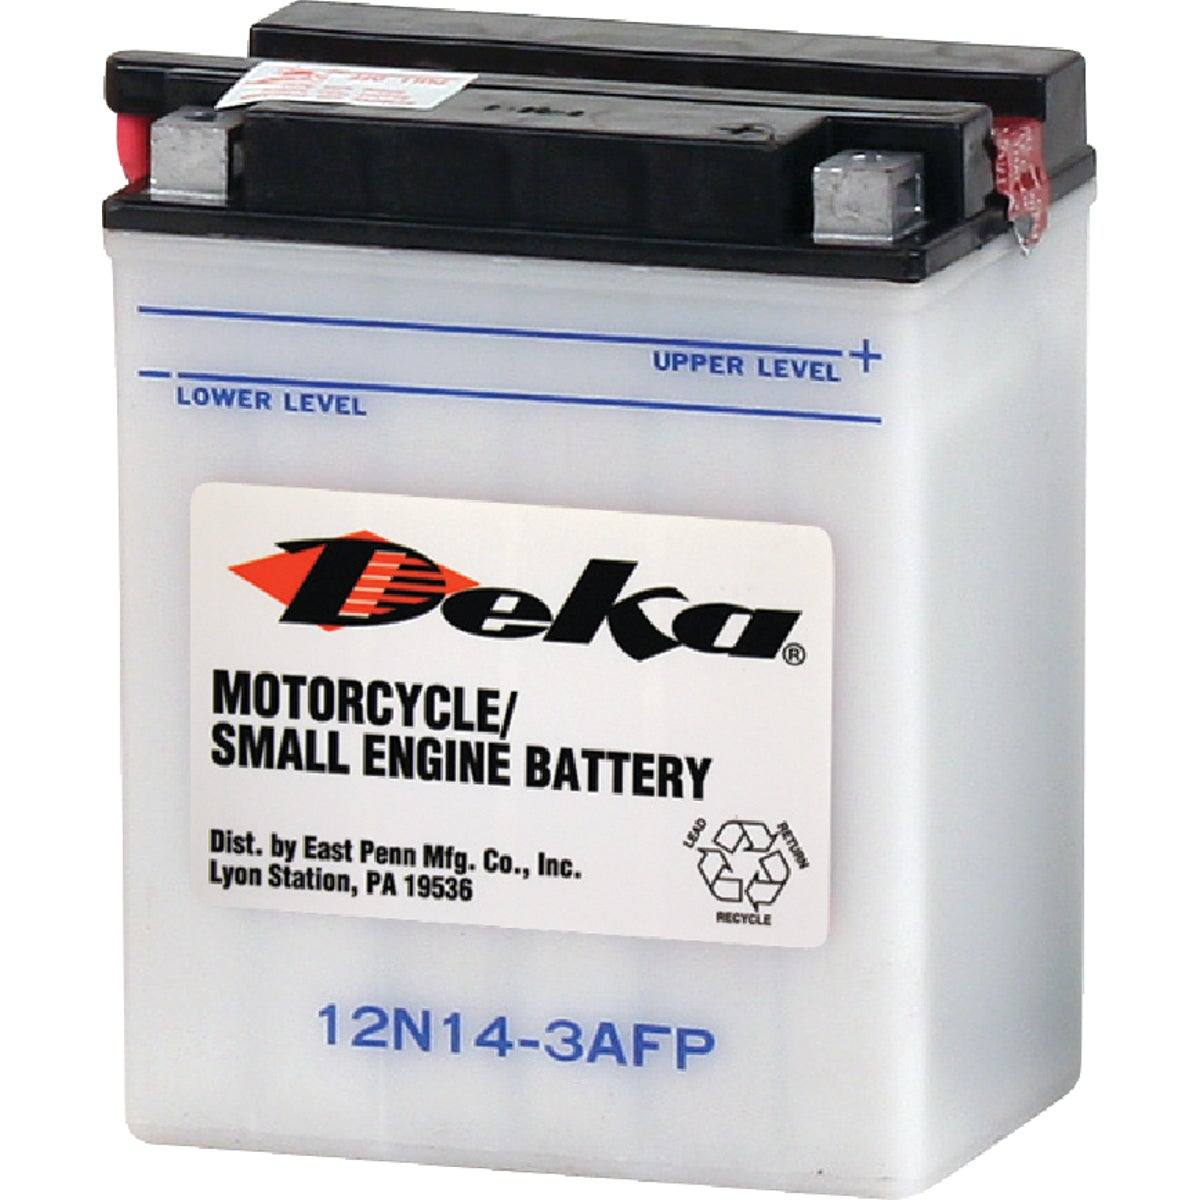 POWER SPORT BATTERY - 12N143AFP by East Penn Mfg. Co.